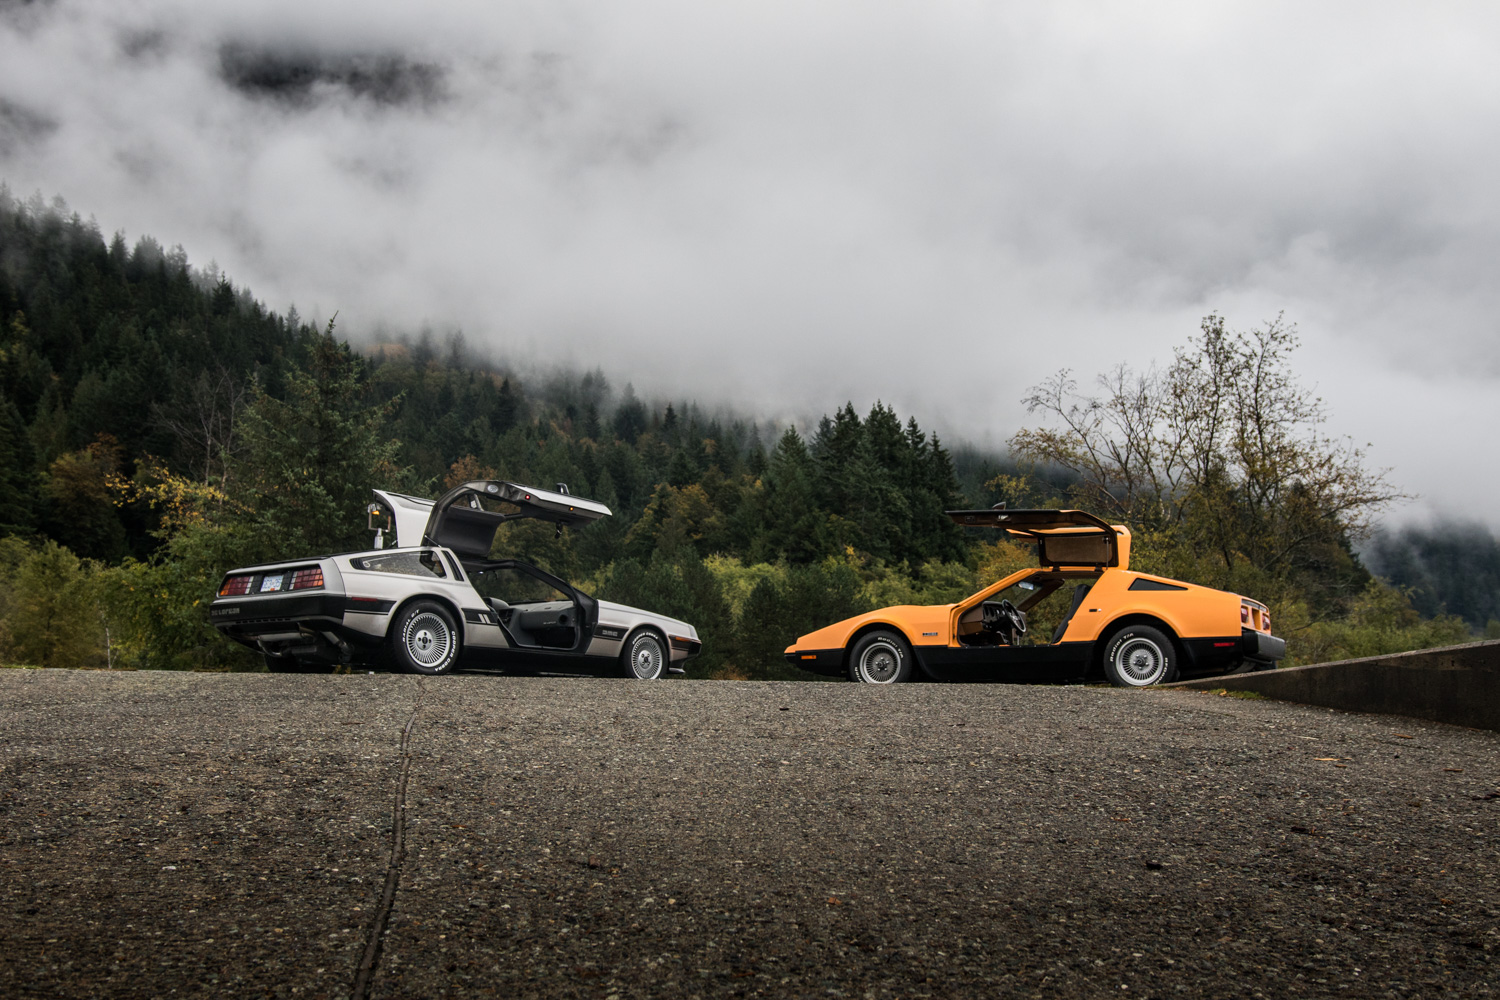 DeLorean DMC-12 vs Bricklin SV1 rear sides